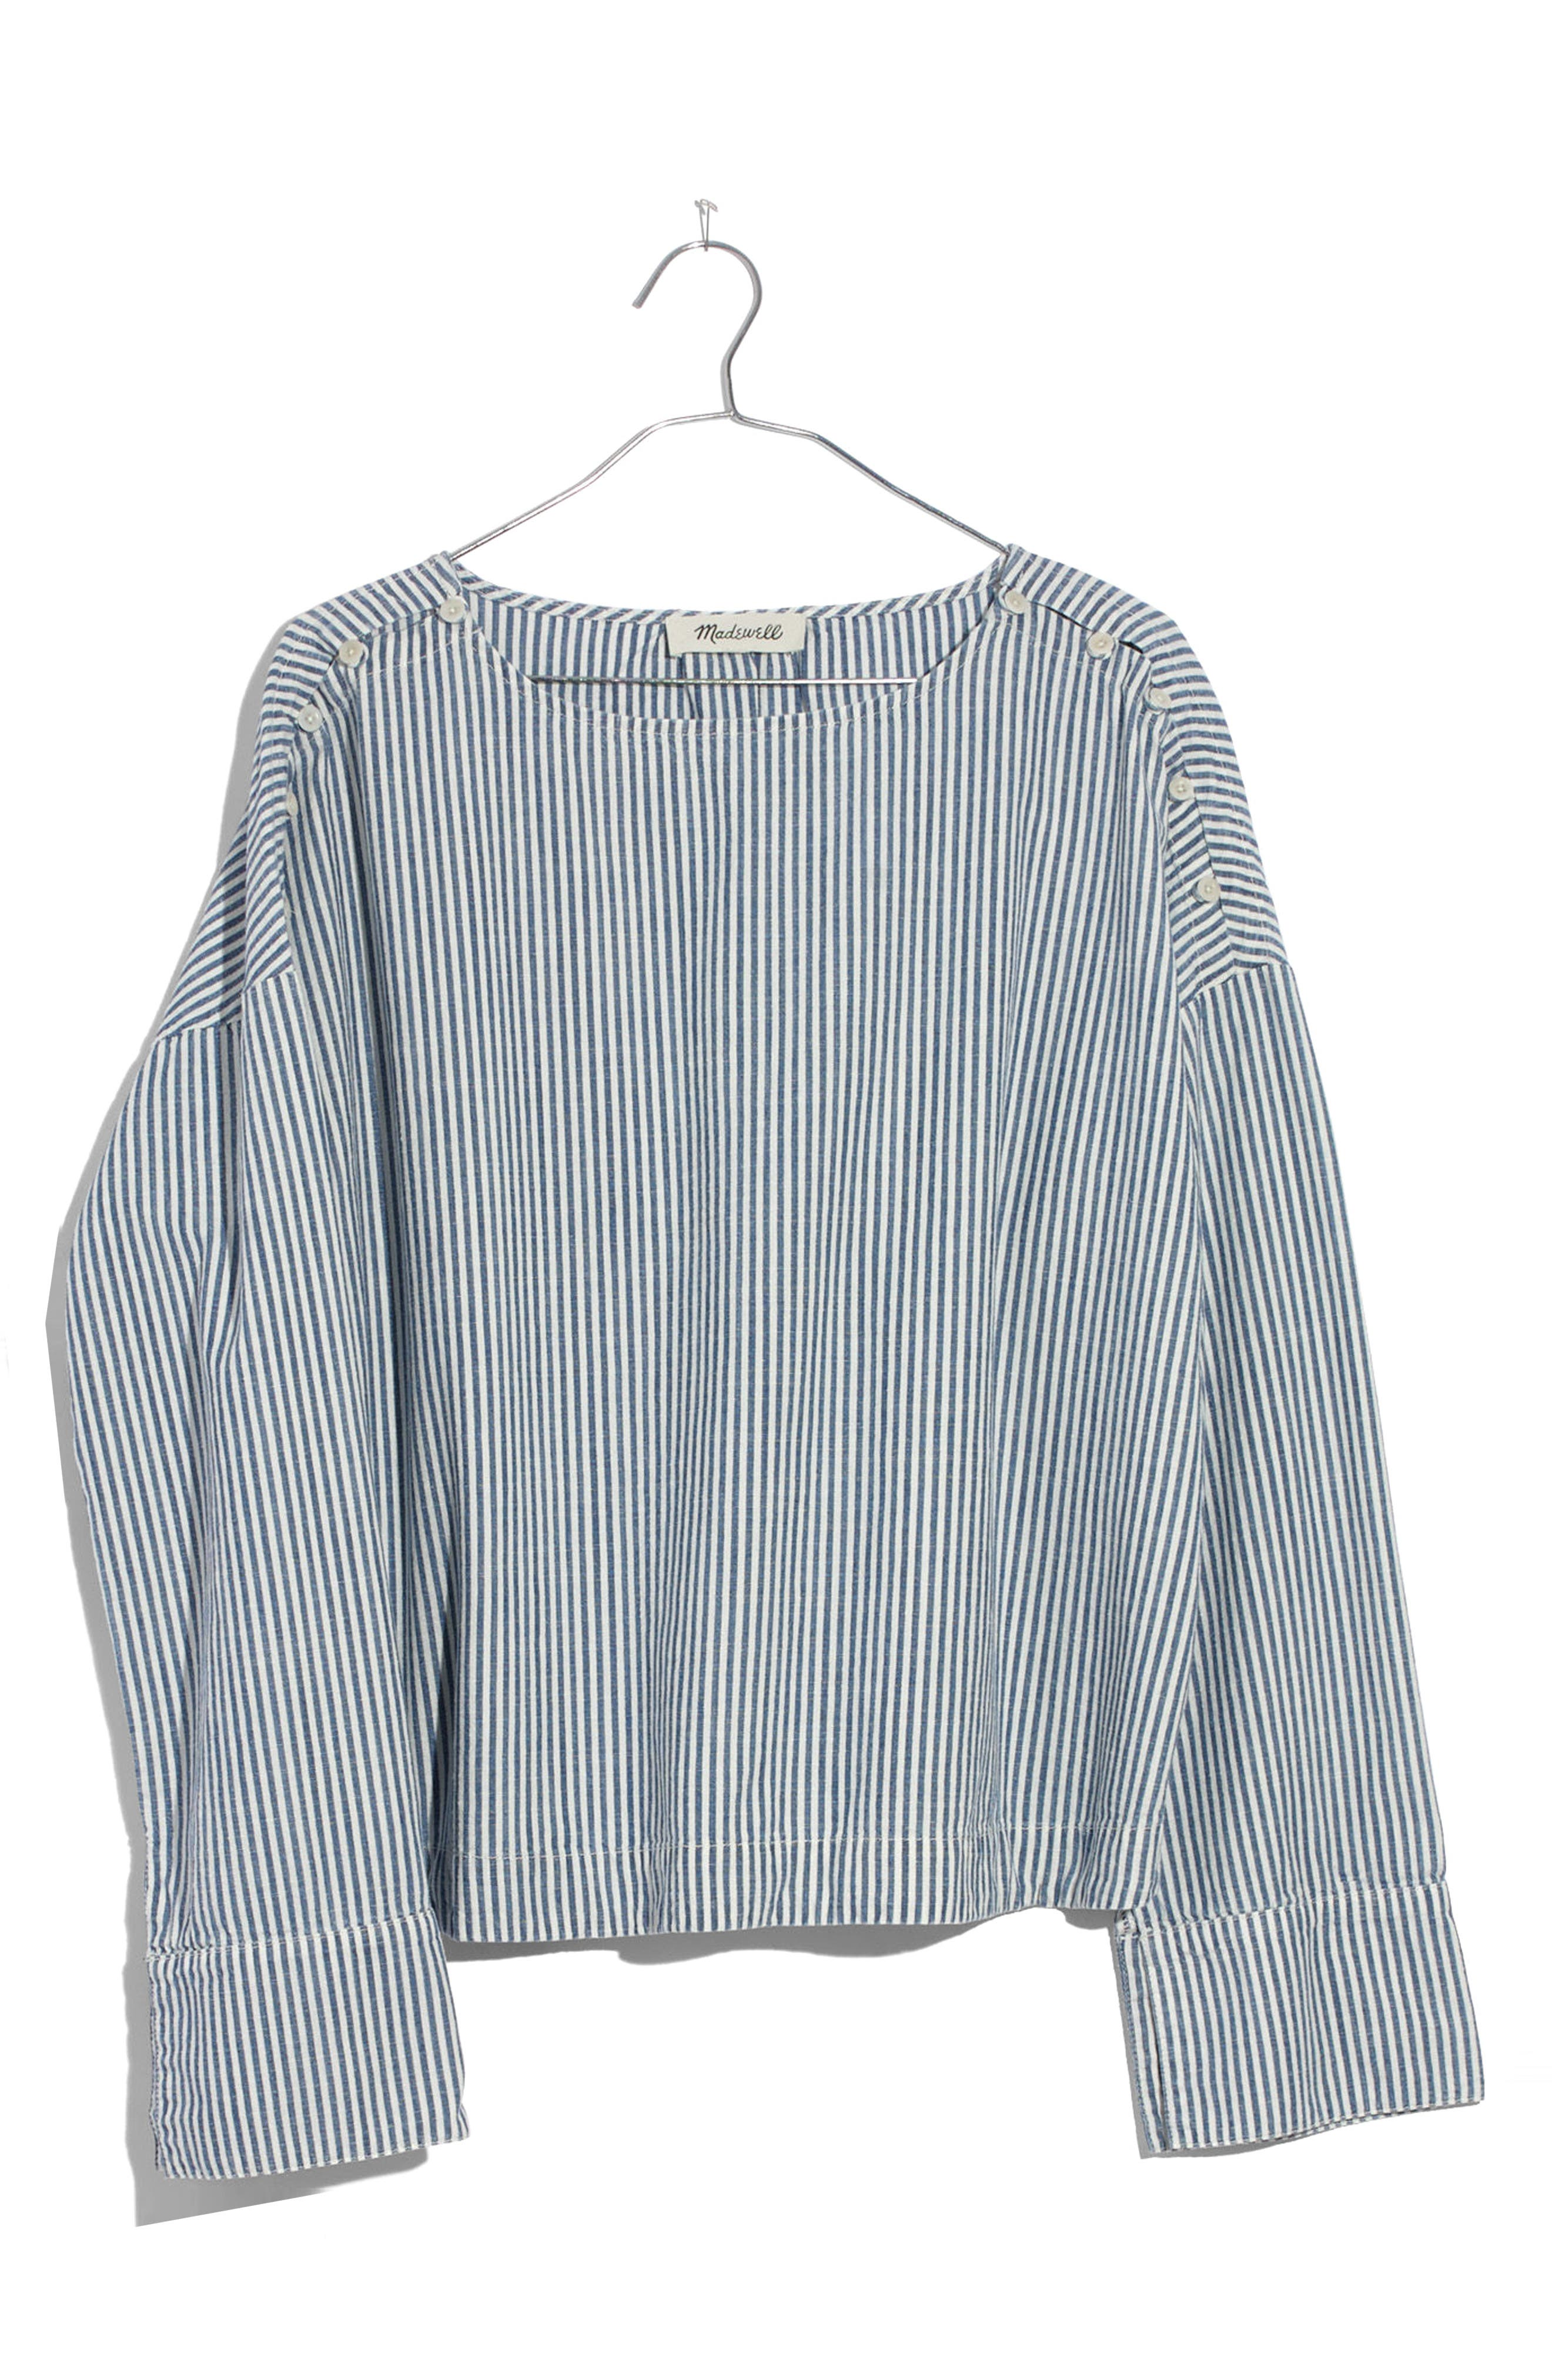 Convertible Cold Shoulder Top,                             Alternate thumbnail 3, color,                             Chambray Stripe